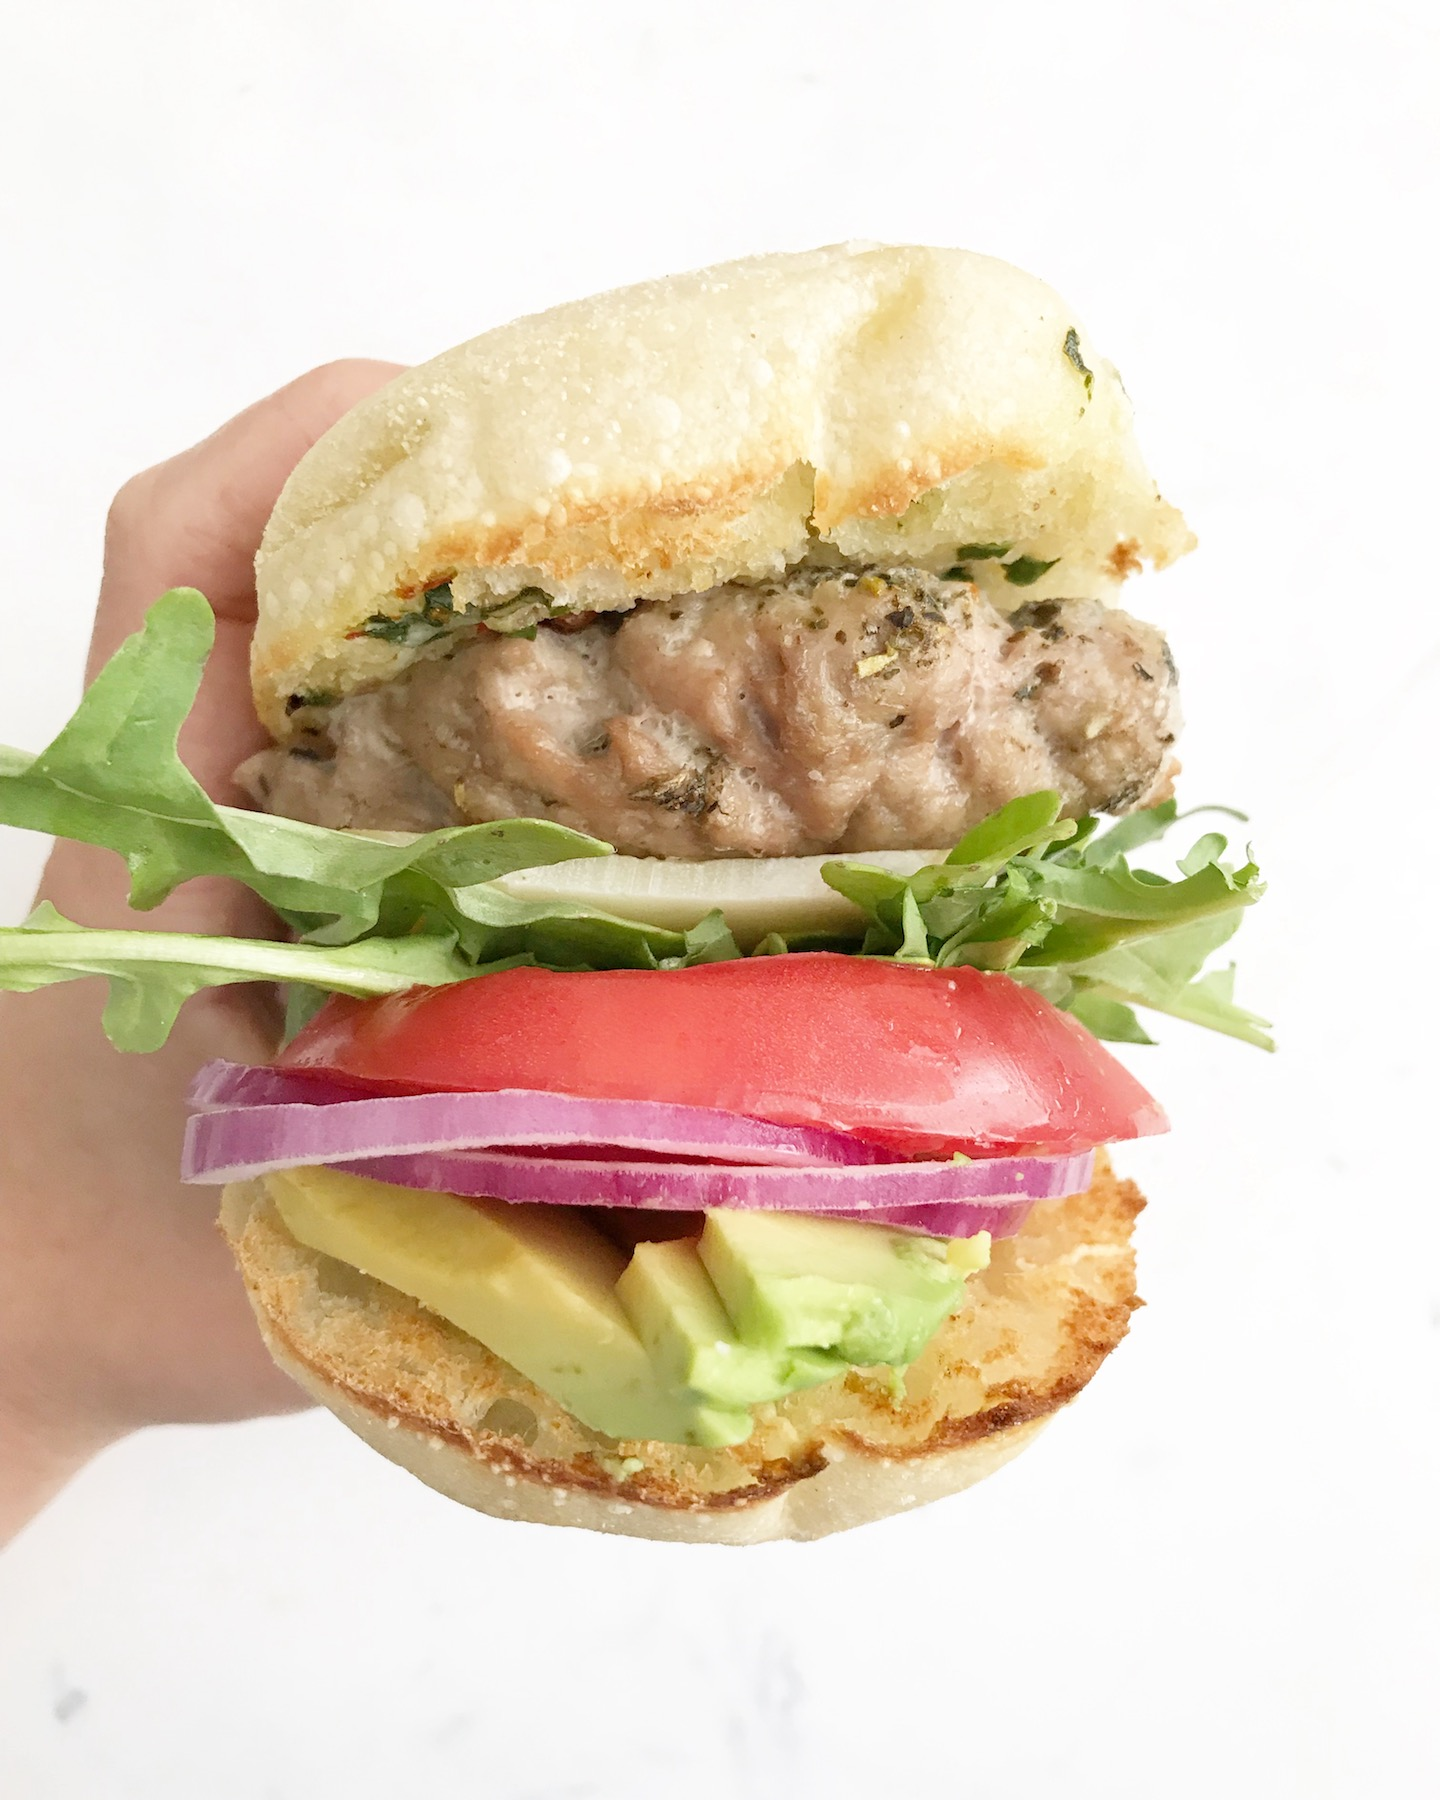 Turkey burger with sun dried tomato compound butter